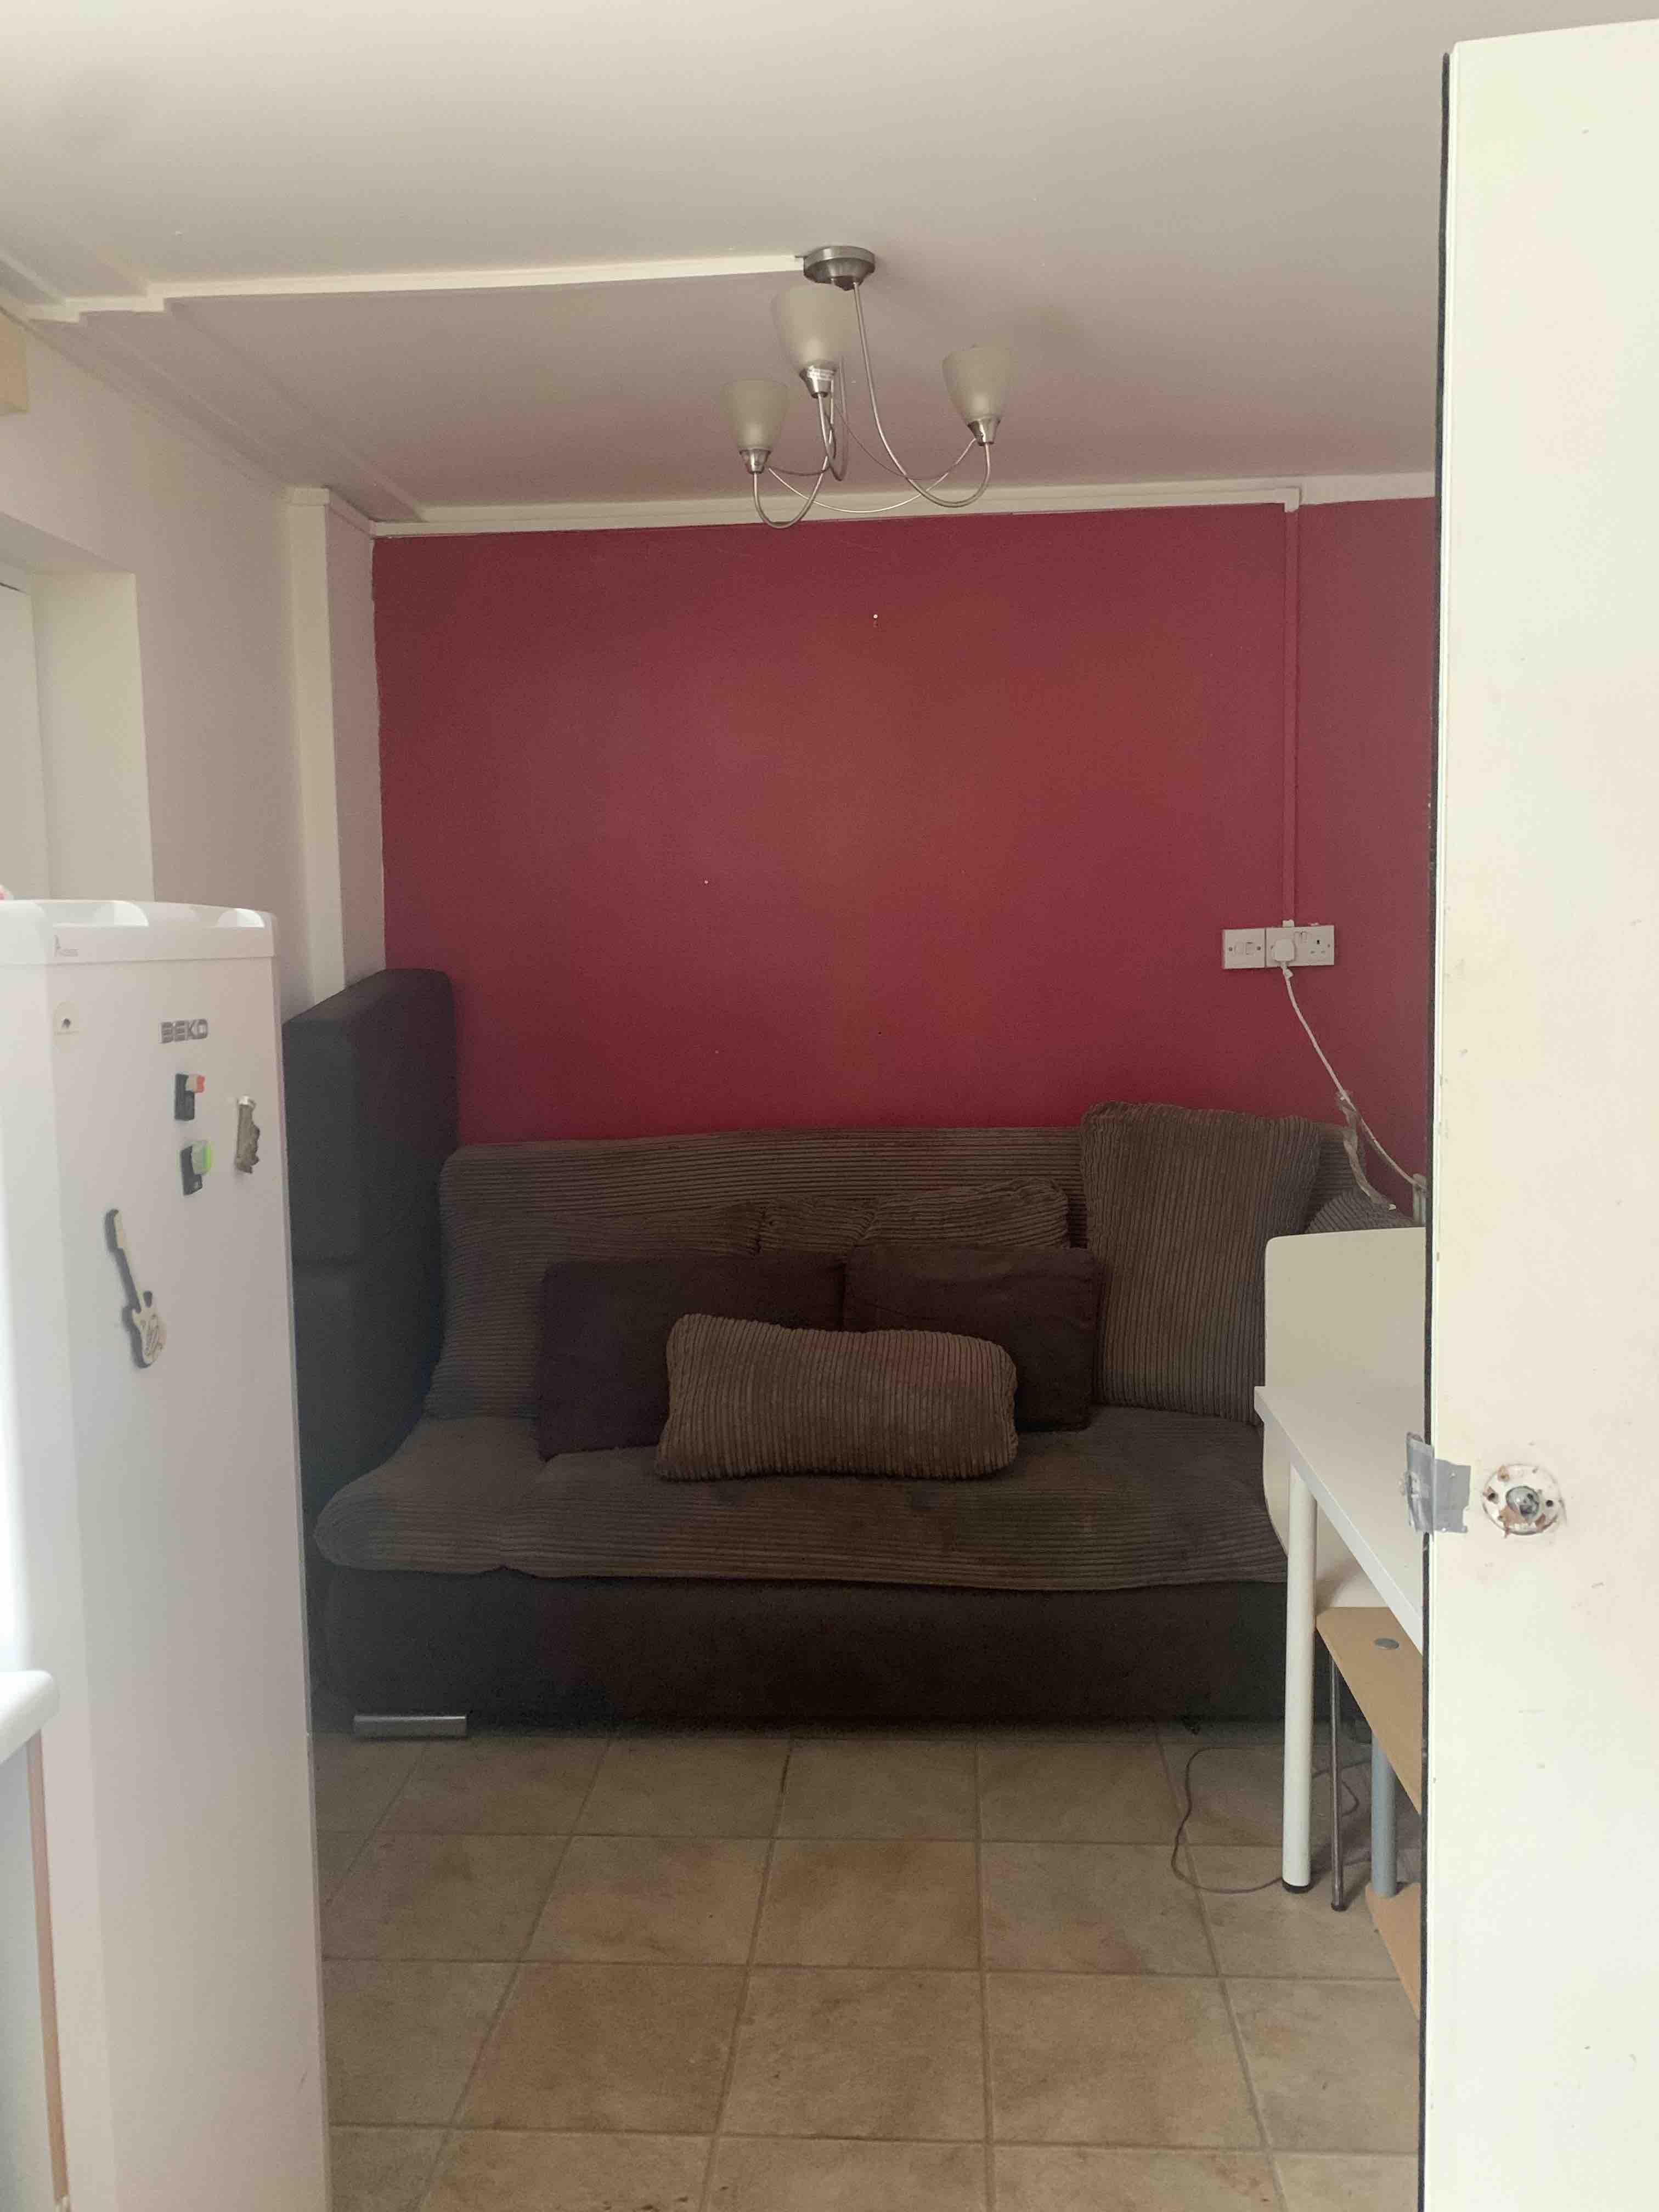 1 room in Vassall, London, SW9 0HG RoomsLocal image